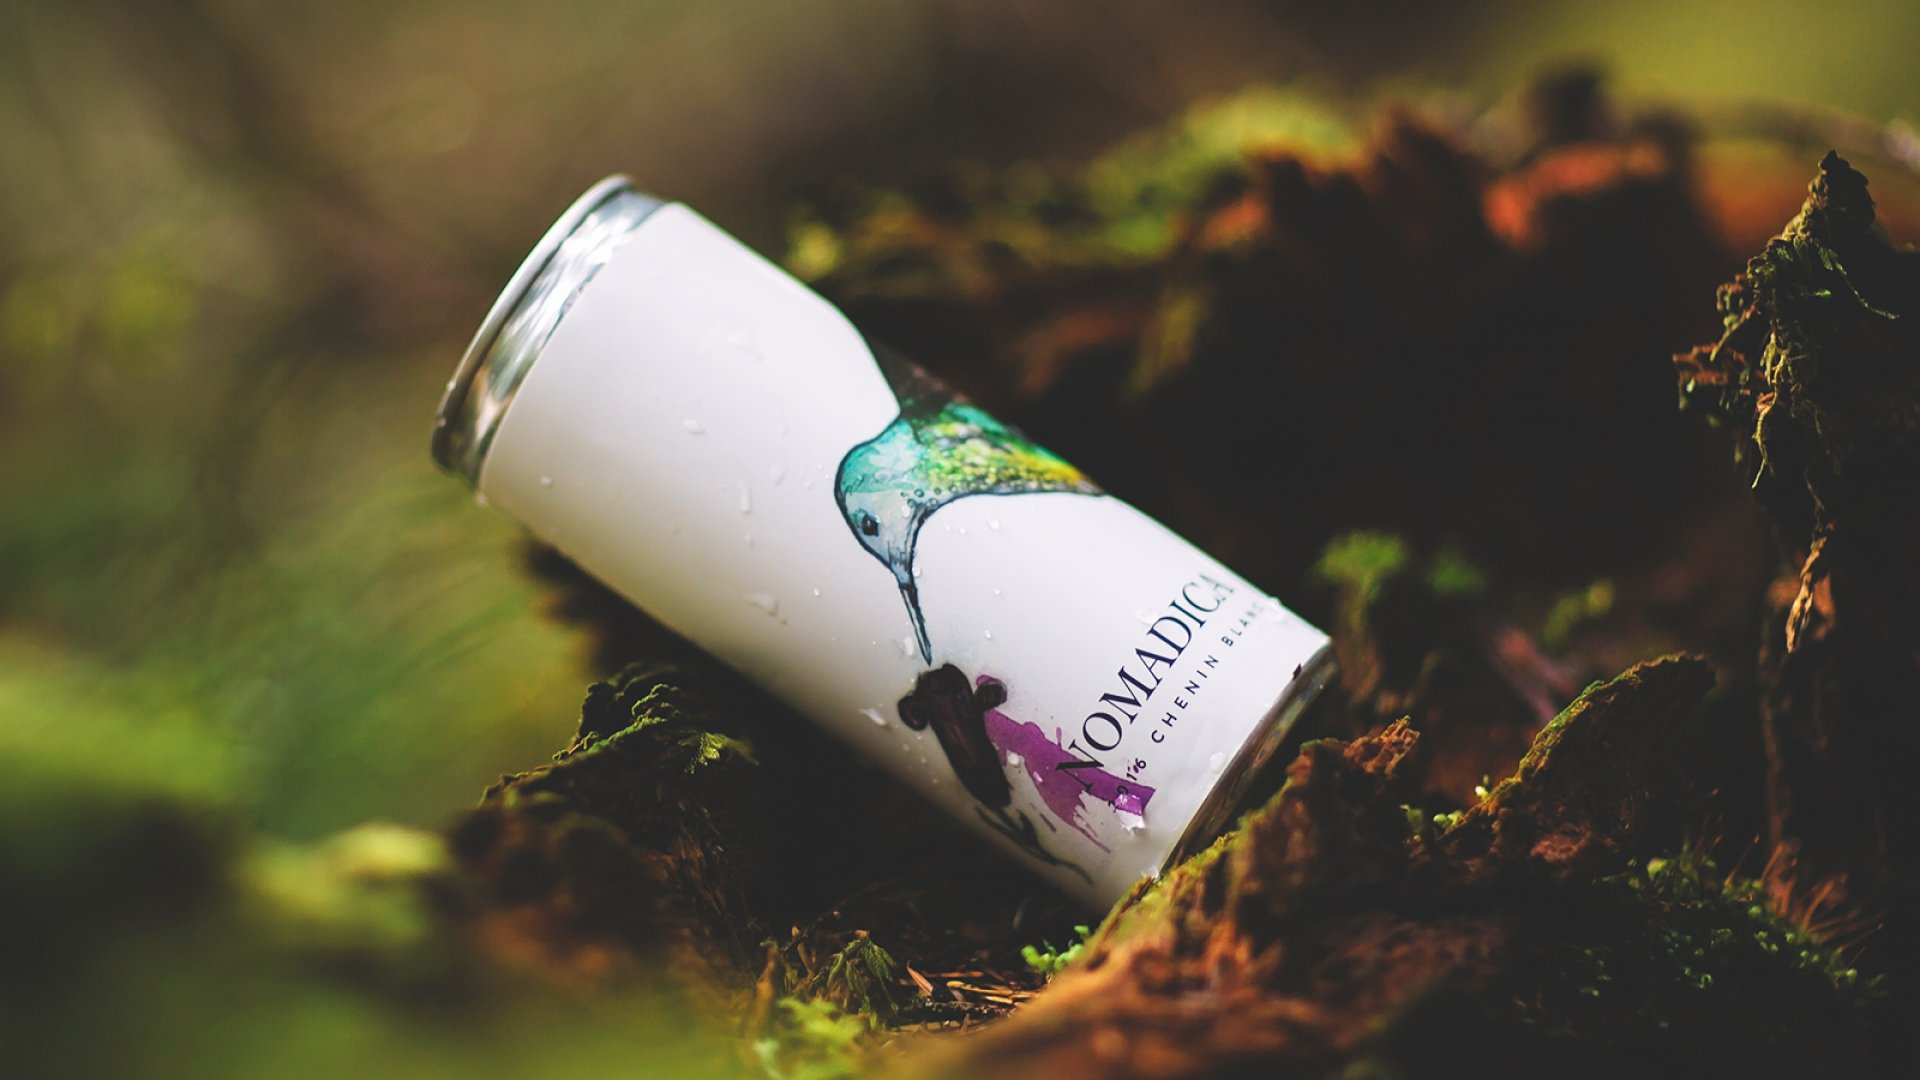 Nomadica, based in Los Angeles, sells canned wines from all over the world.